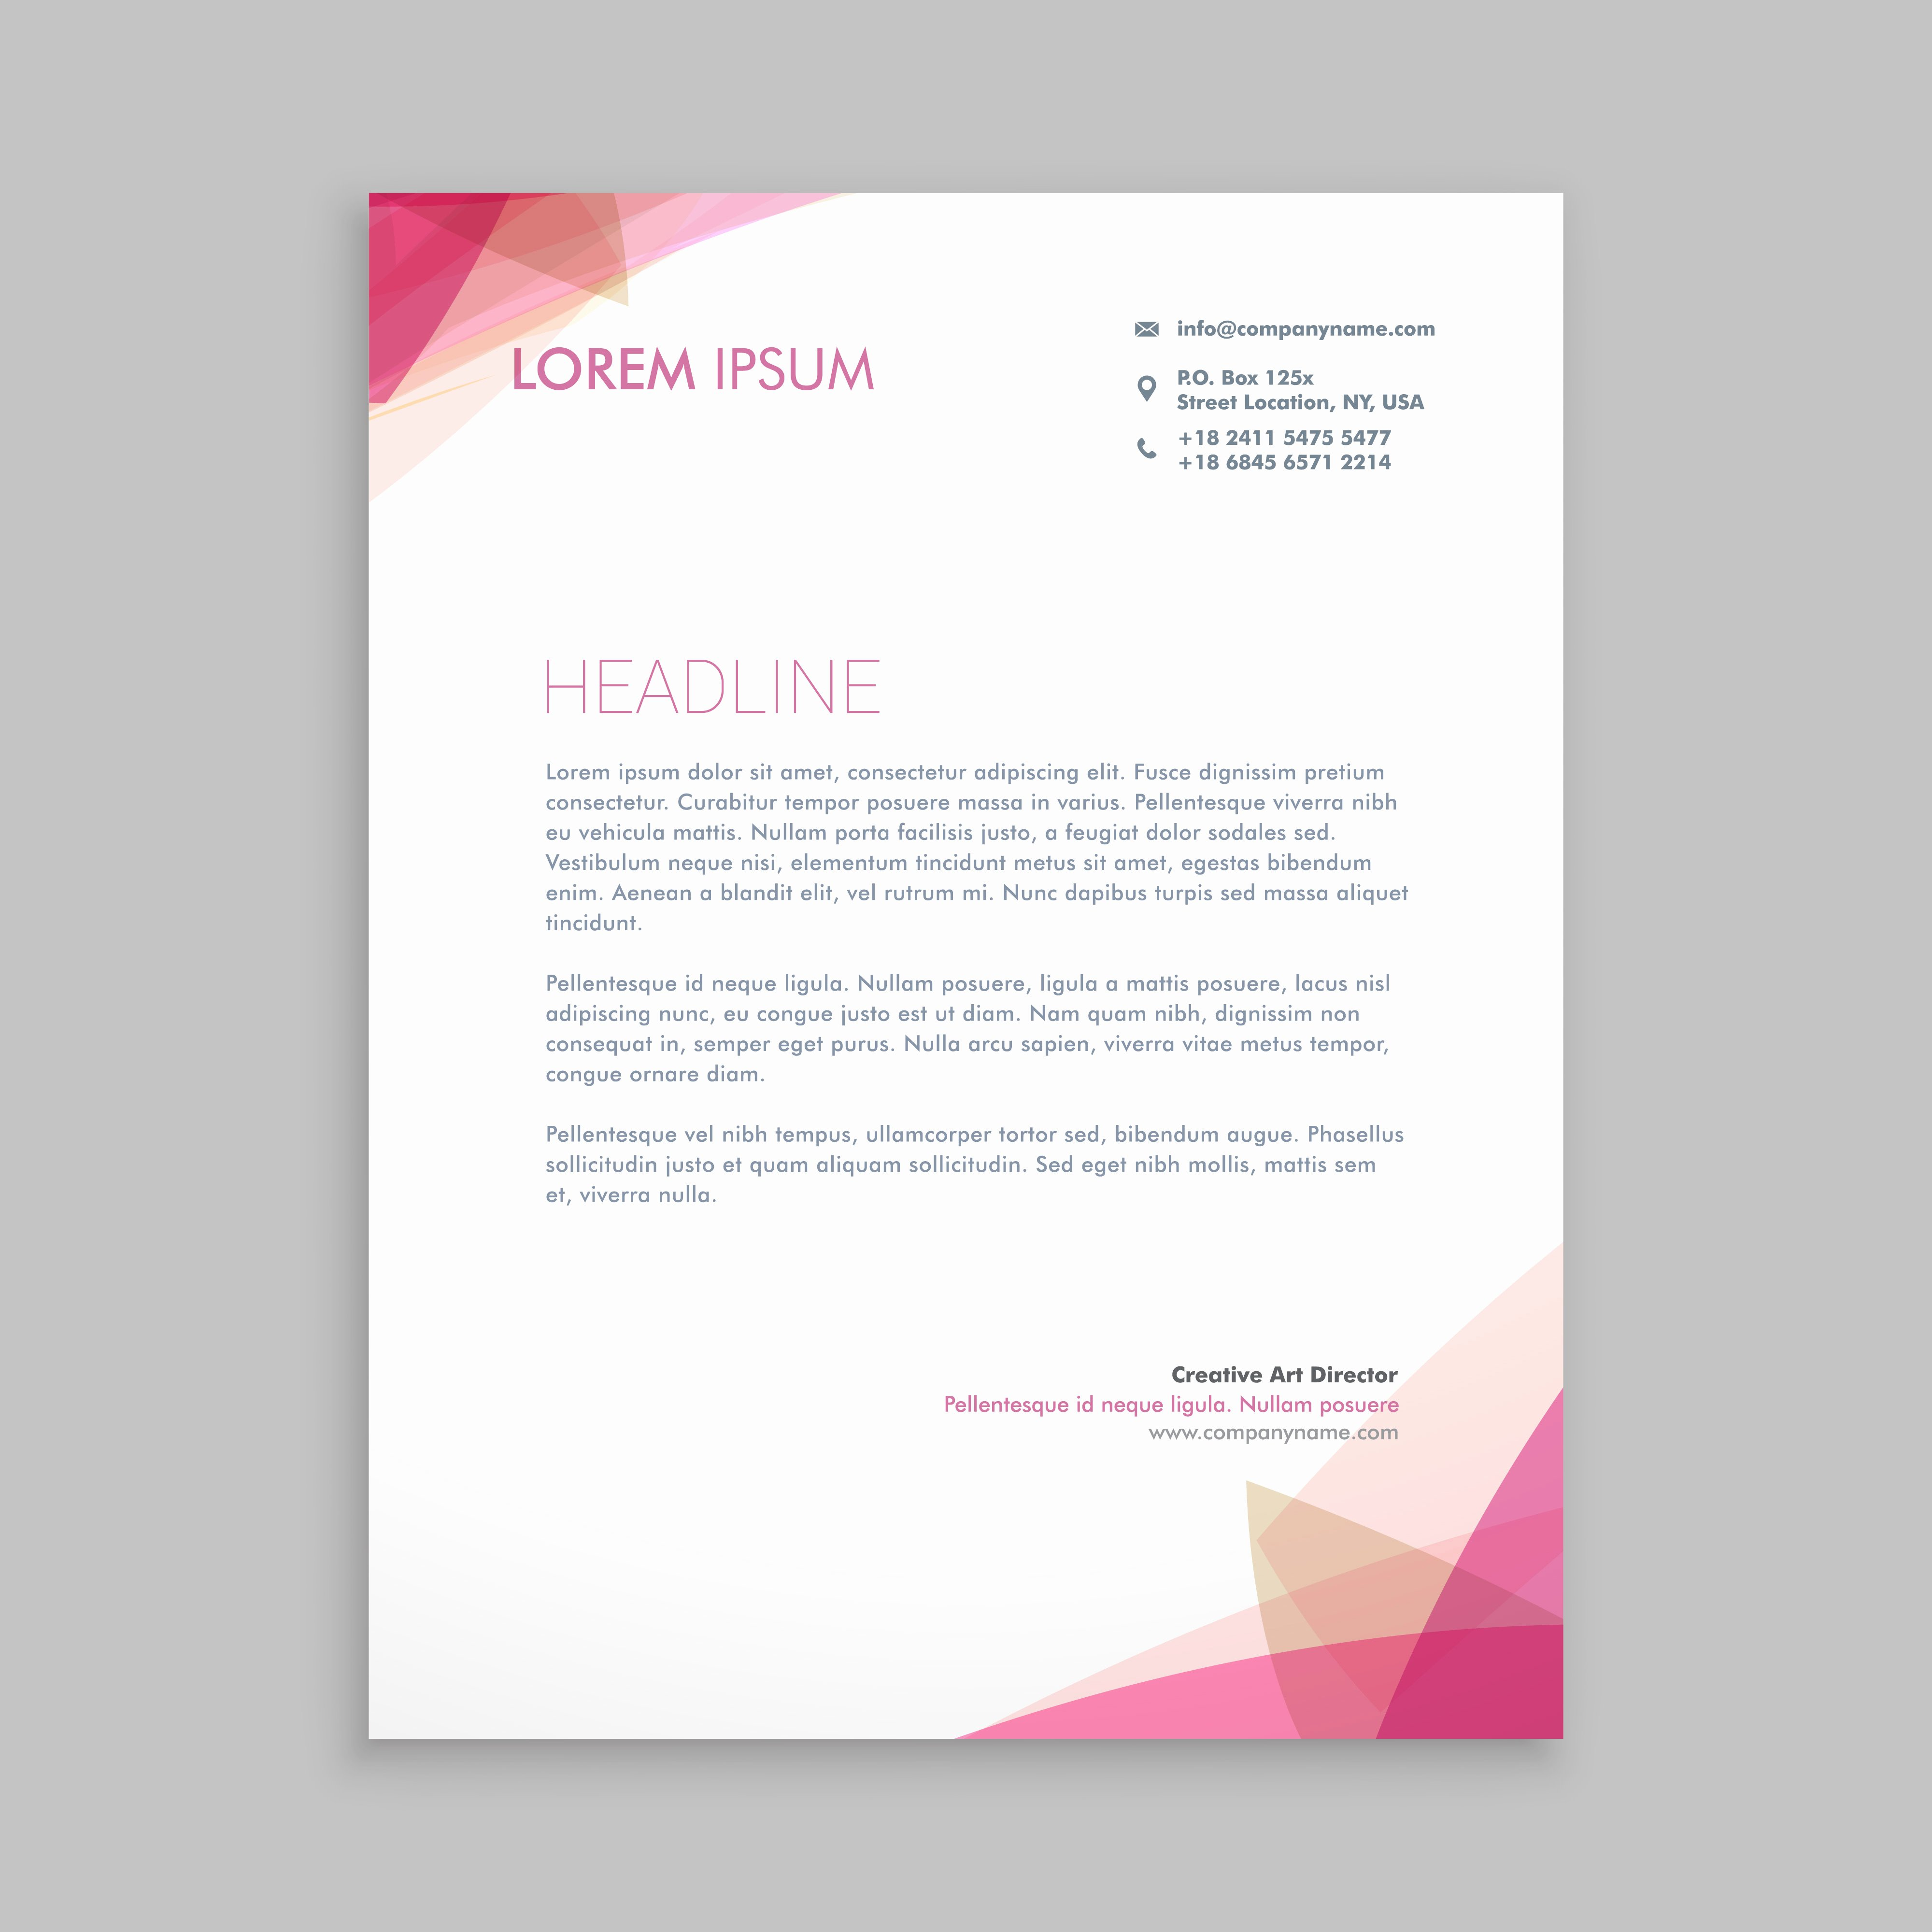 Letterhead Design In Word New Letterhead Free Vector Art 25 011 Free Downloads